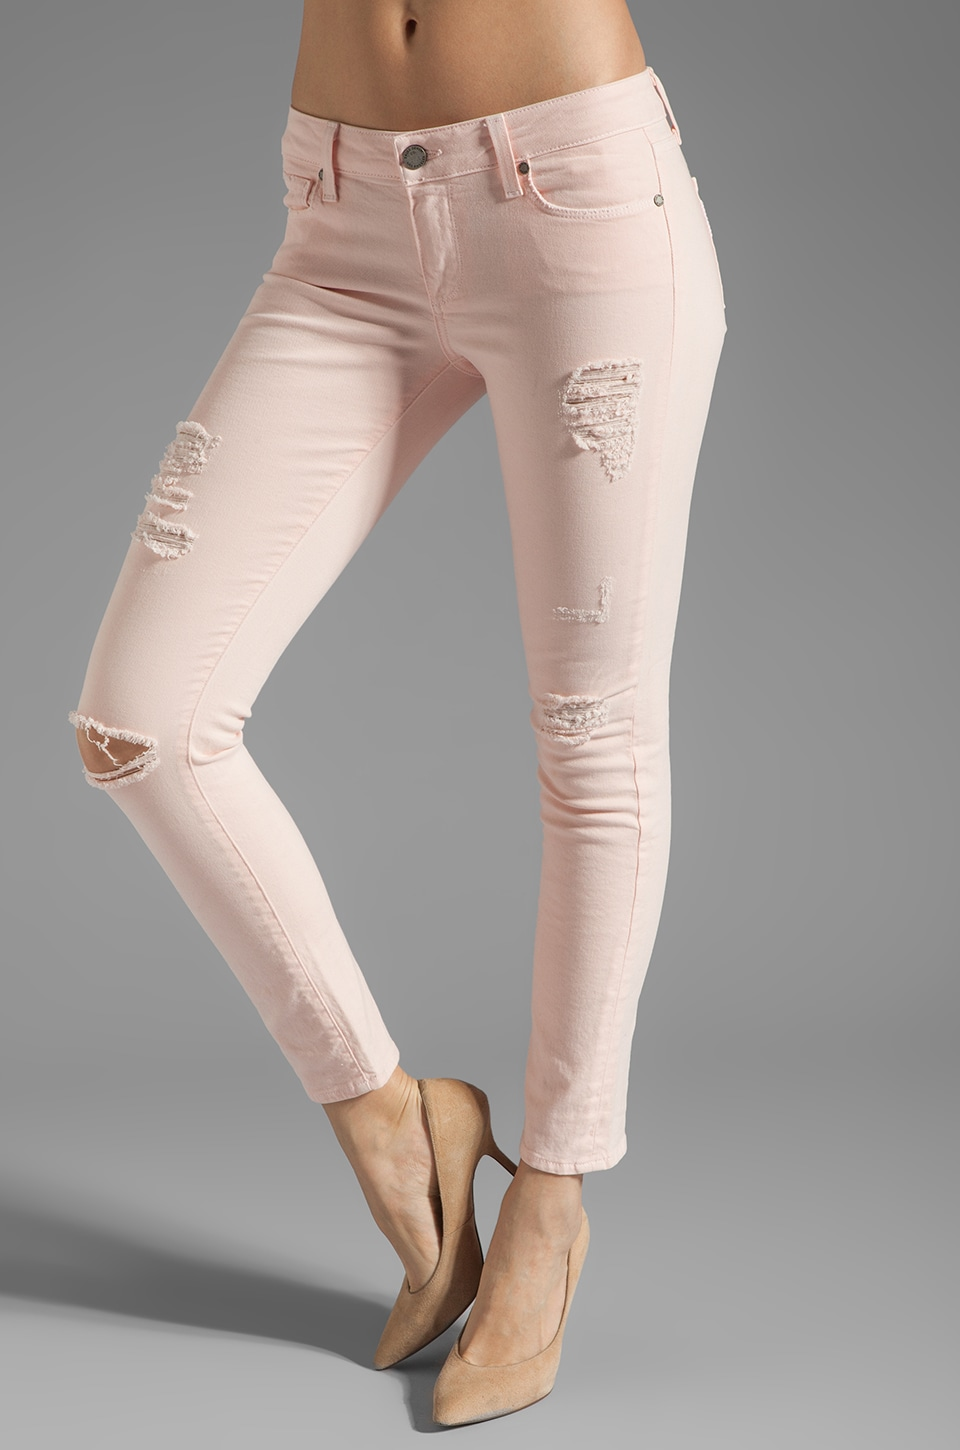 Paige Denim Destructed Skyline Ankle Peg in Blossom